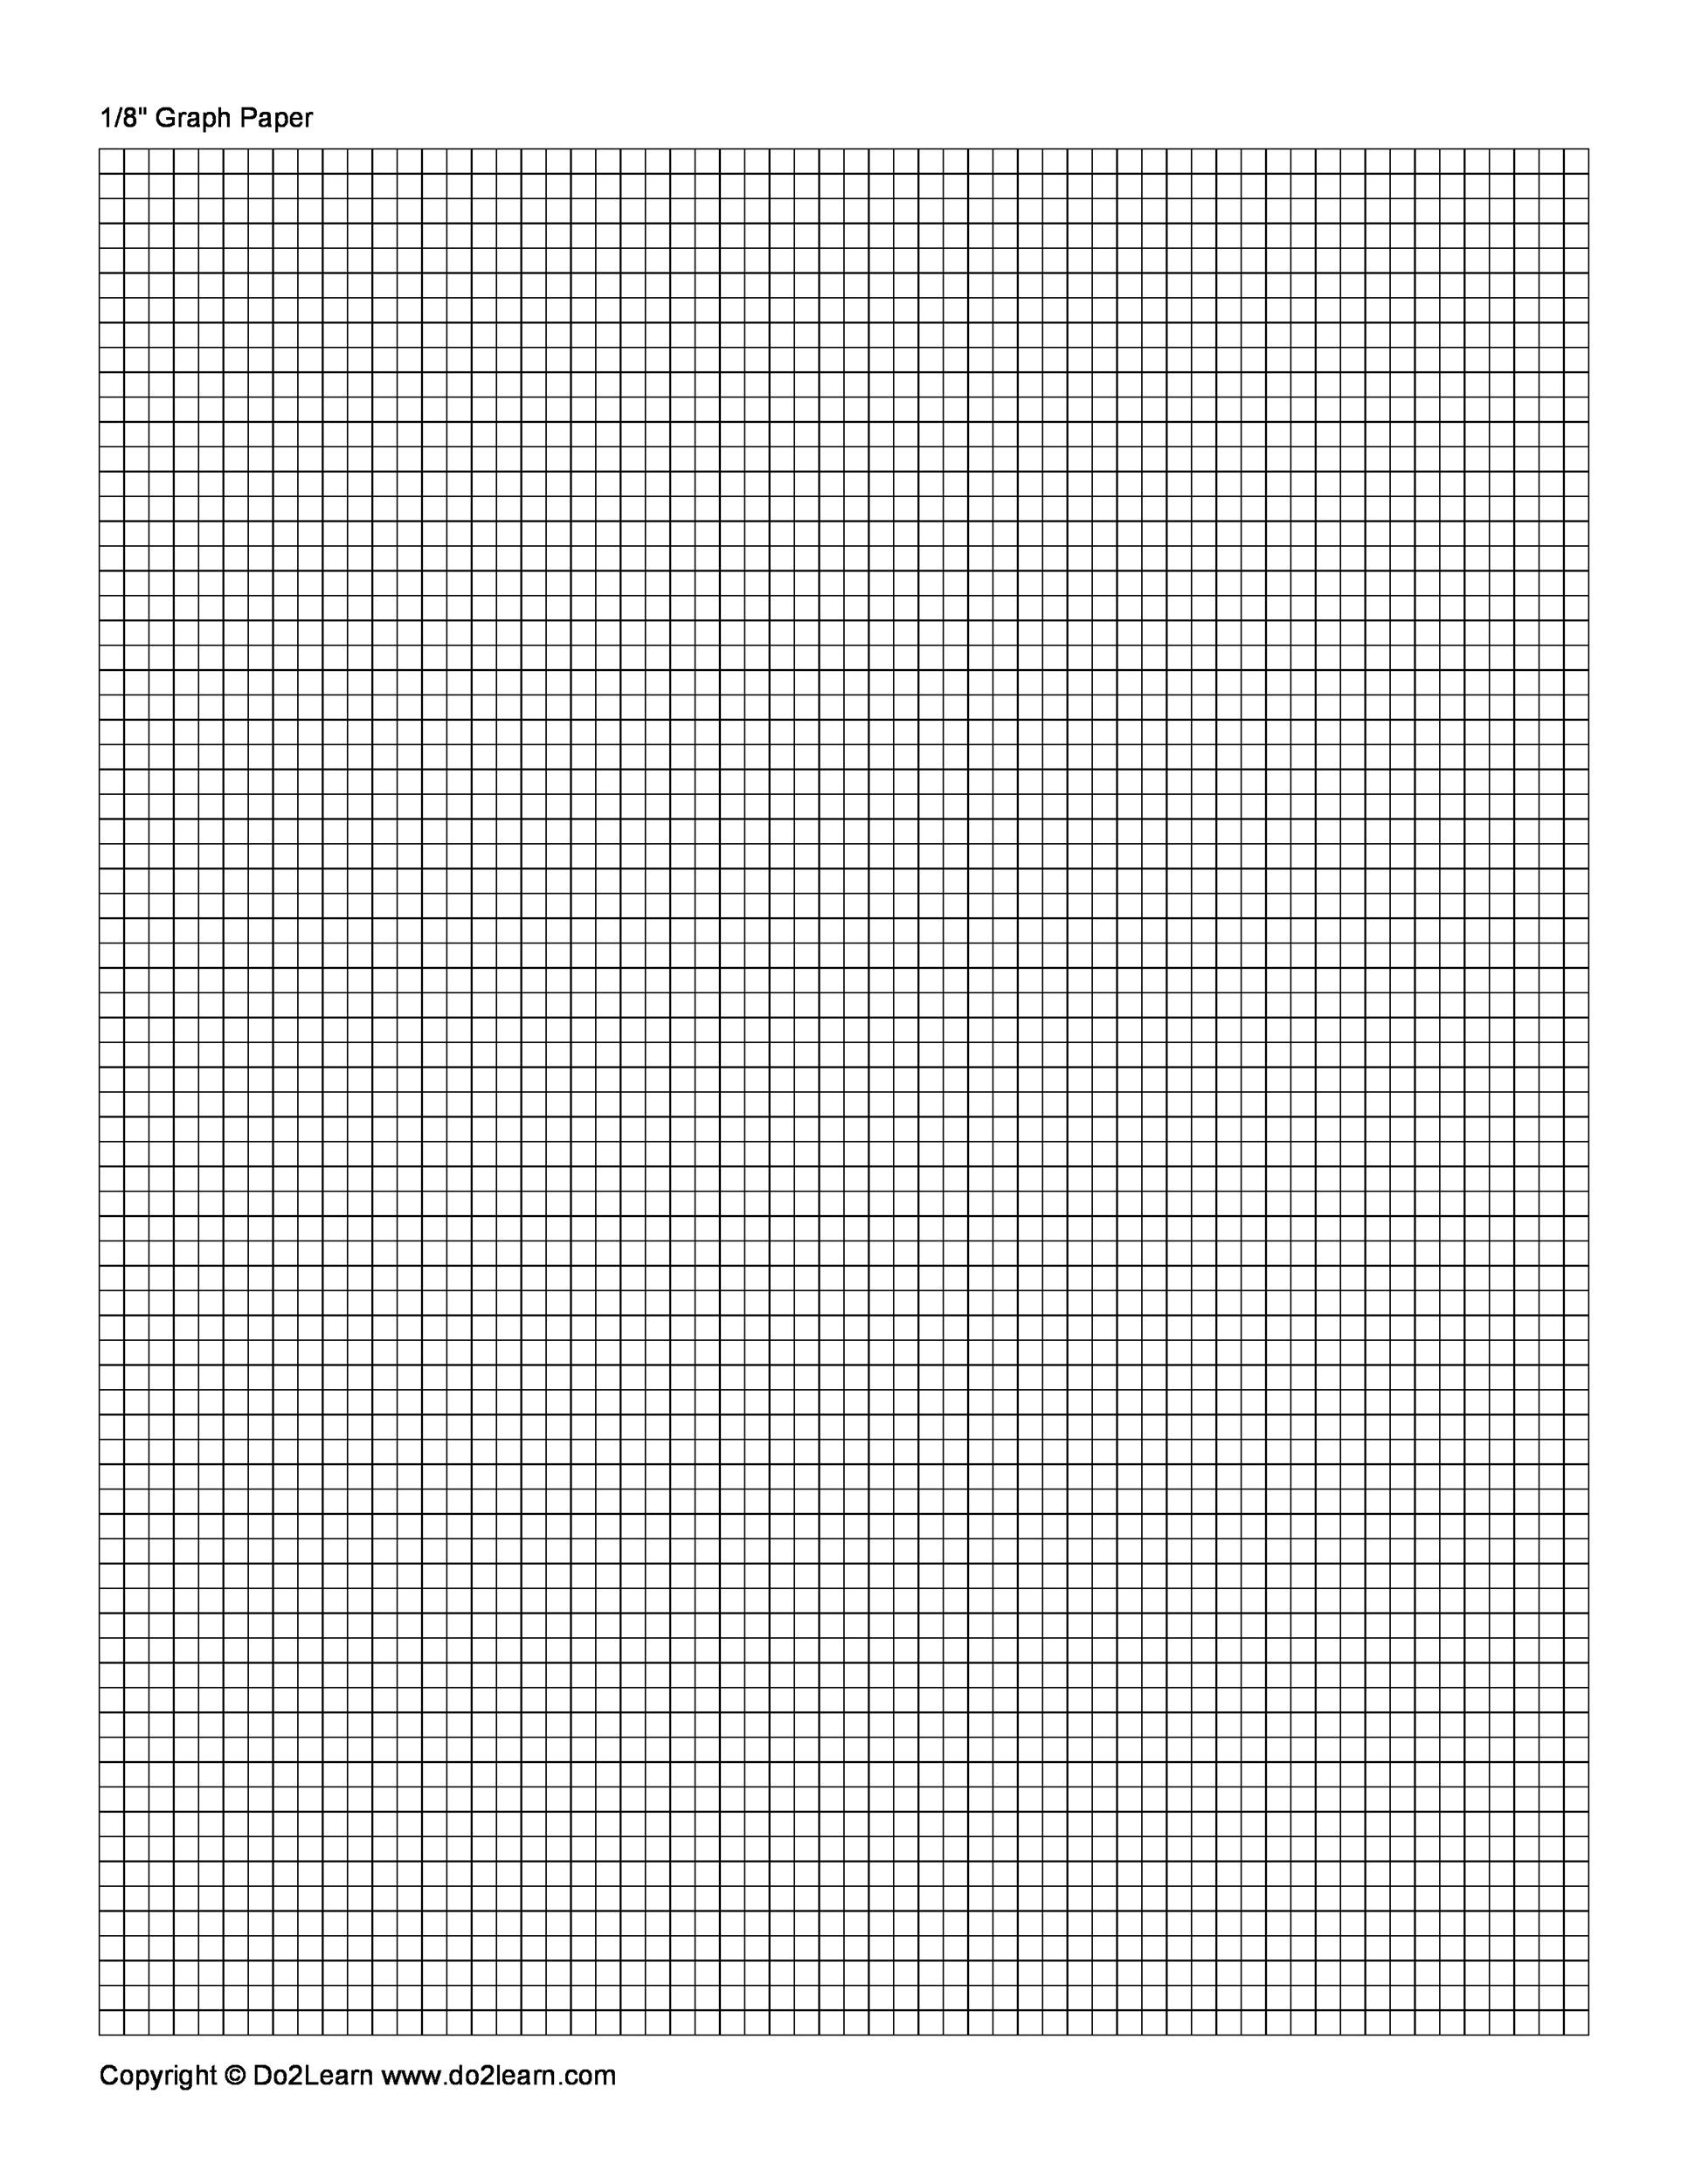 Printable Graph Paper Template 01  Loose Leaf Paper Template